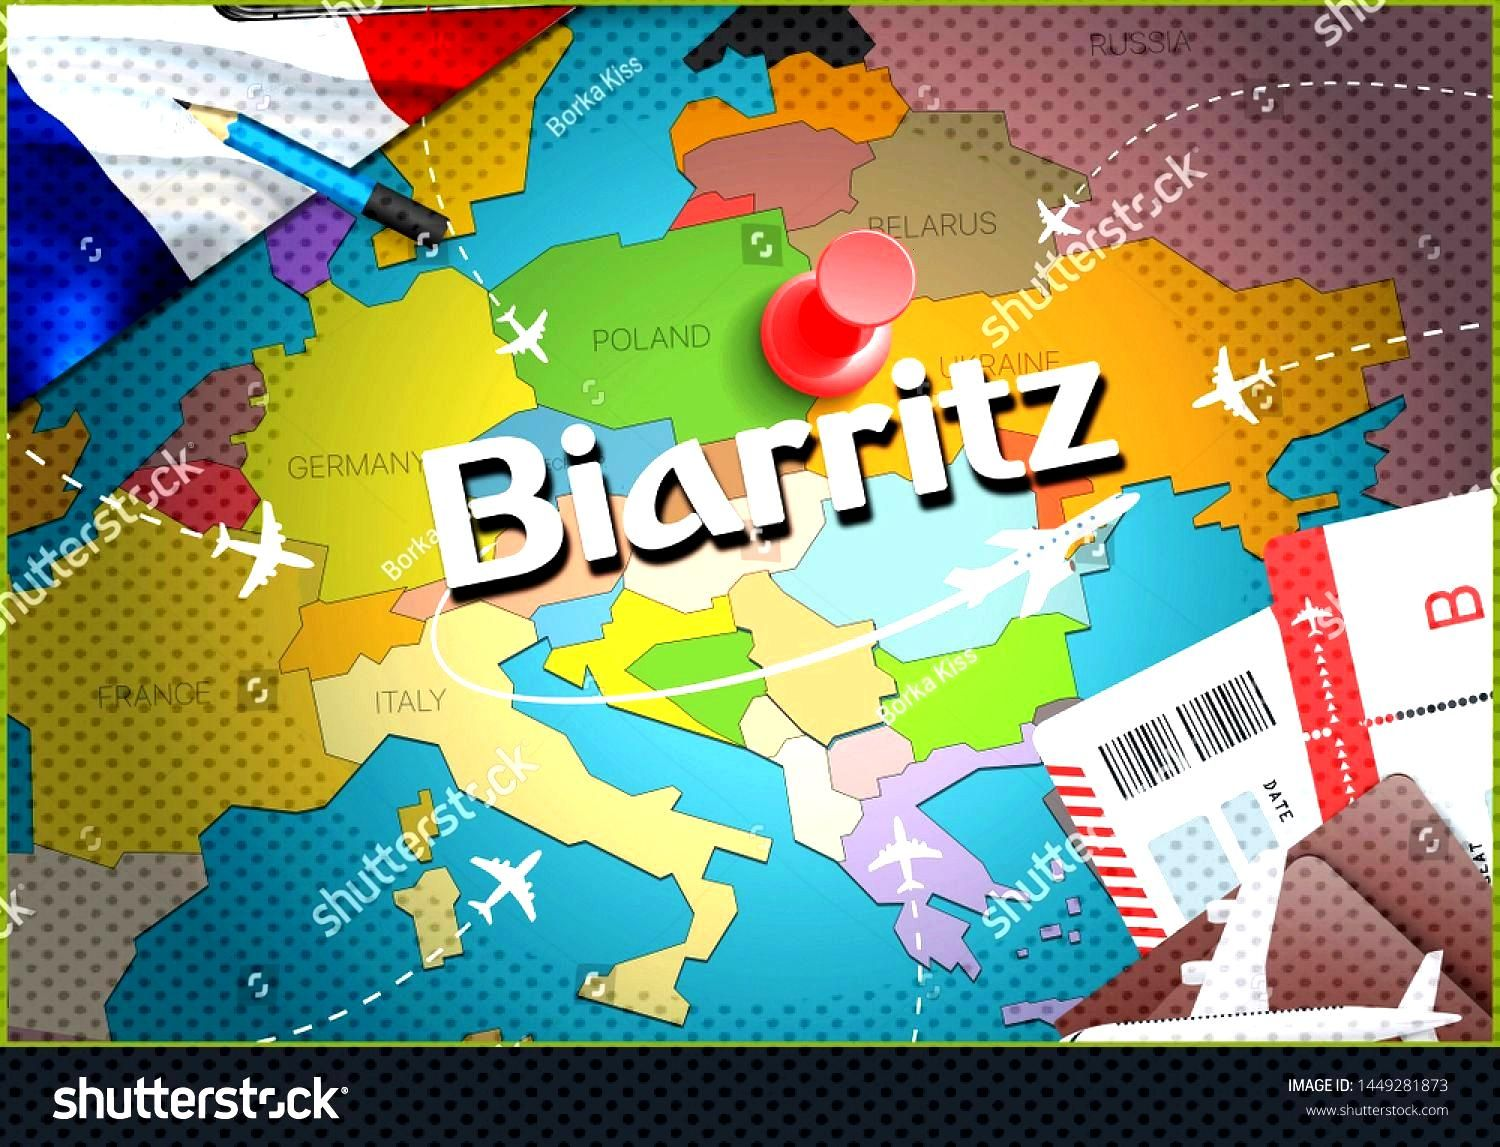 Biarritz city travel and tourism destination concept. France flag and Biarritz city on map. France